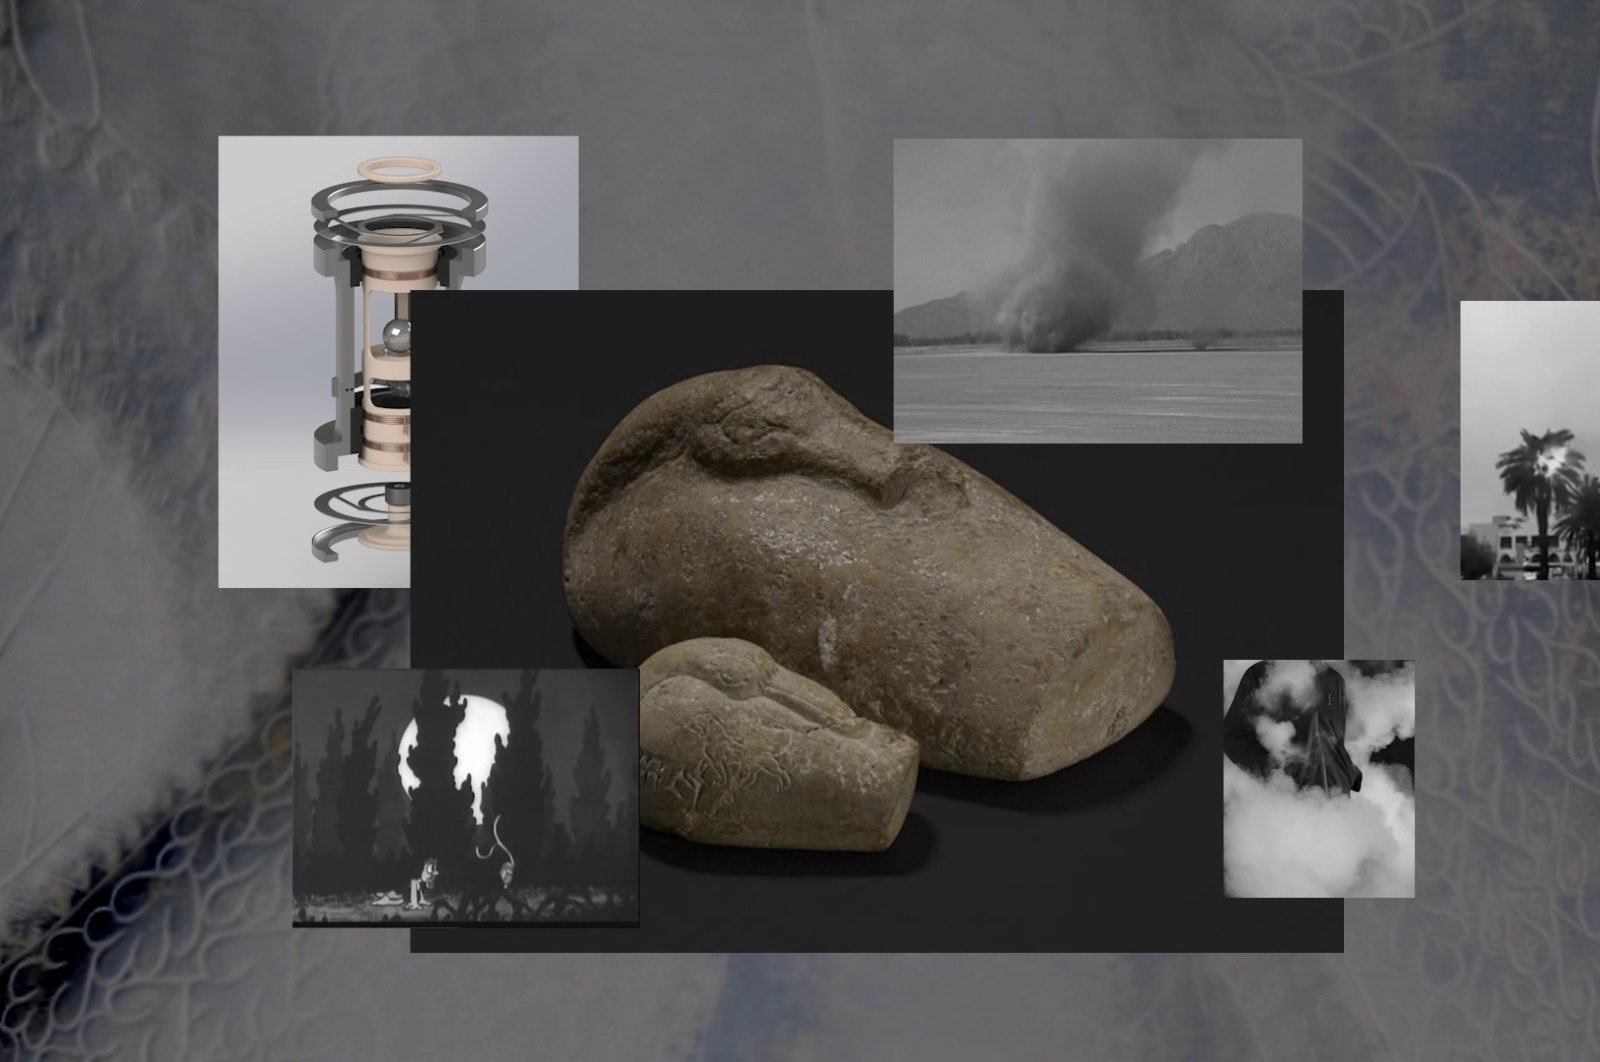 """Still shot from """"For All the Time, for All the Sad Stones"""" (2019) by Nicola Lorini. (Courtesy of Pera Museum)"""